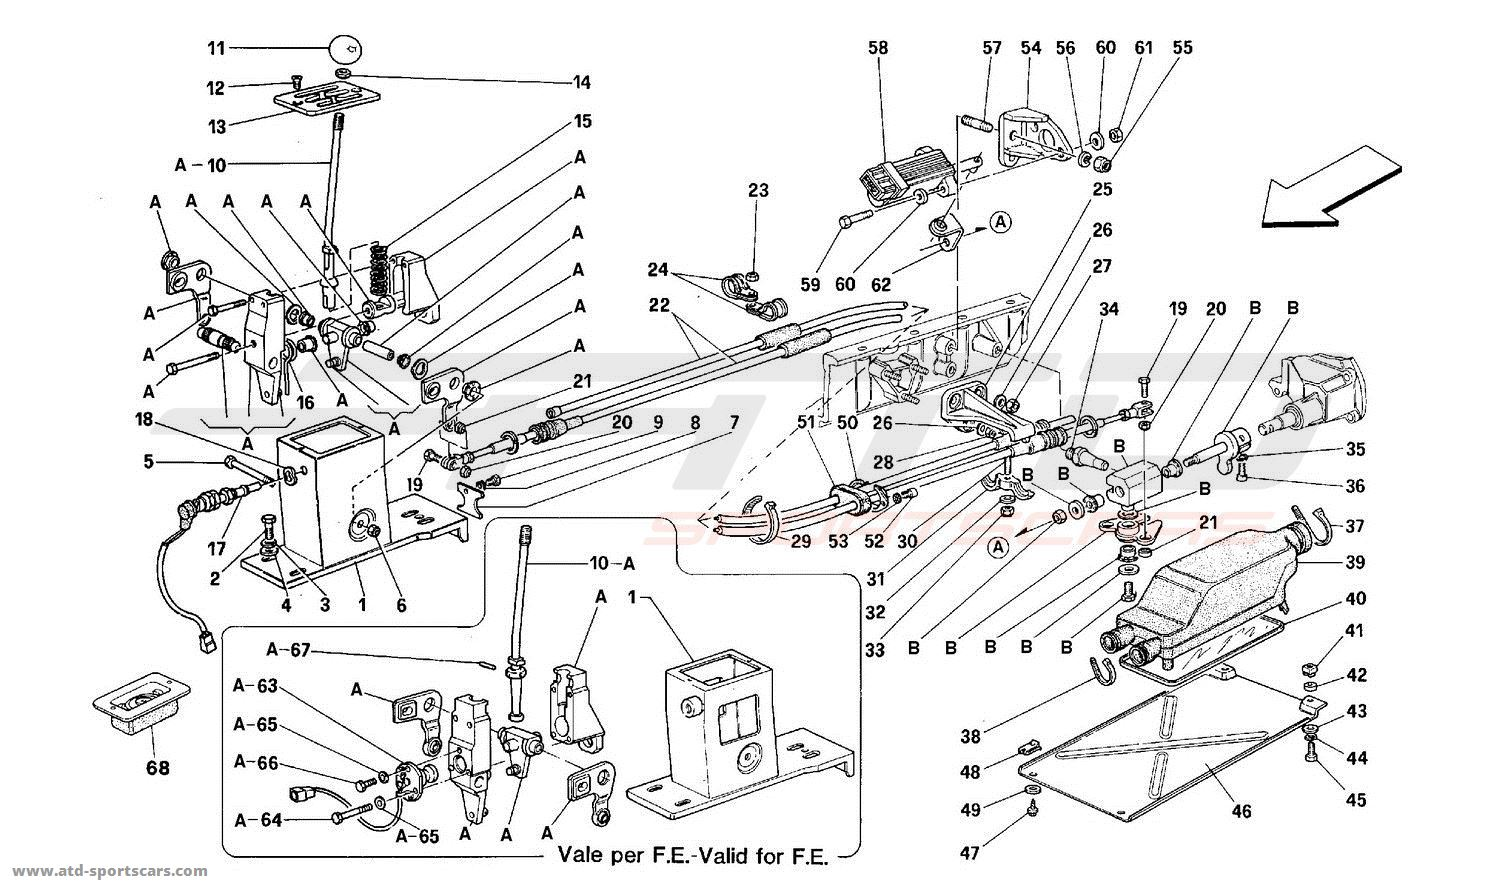 ferrari mondial t gearbox clutch parts at atd sportscars atd sportscars. Black Bedroom Furniture Sets. Home Design Ideas